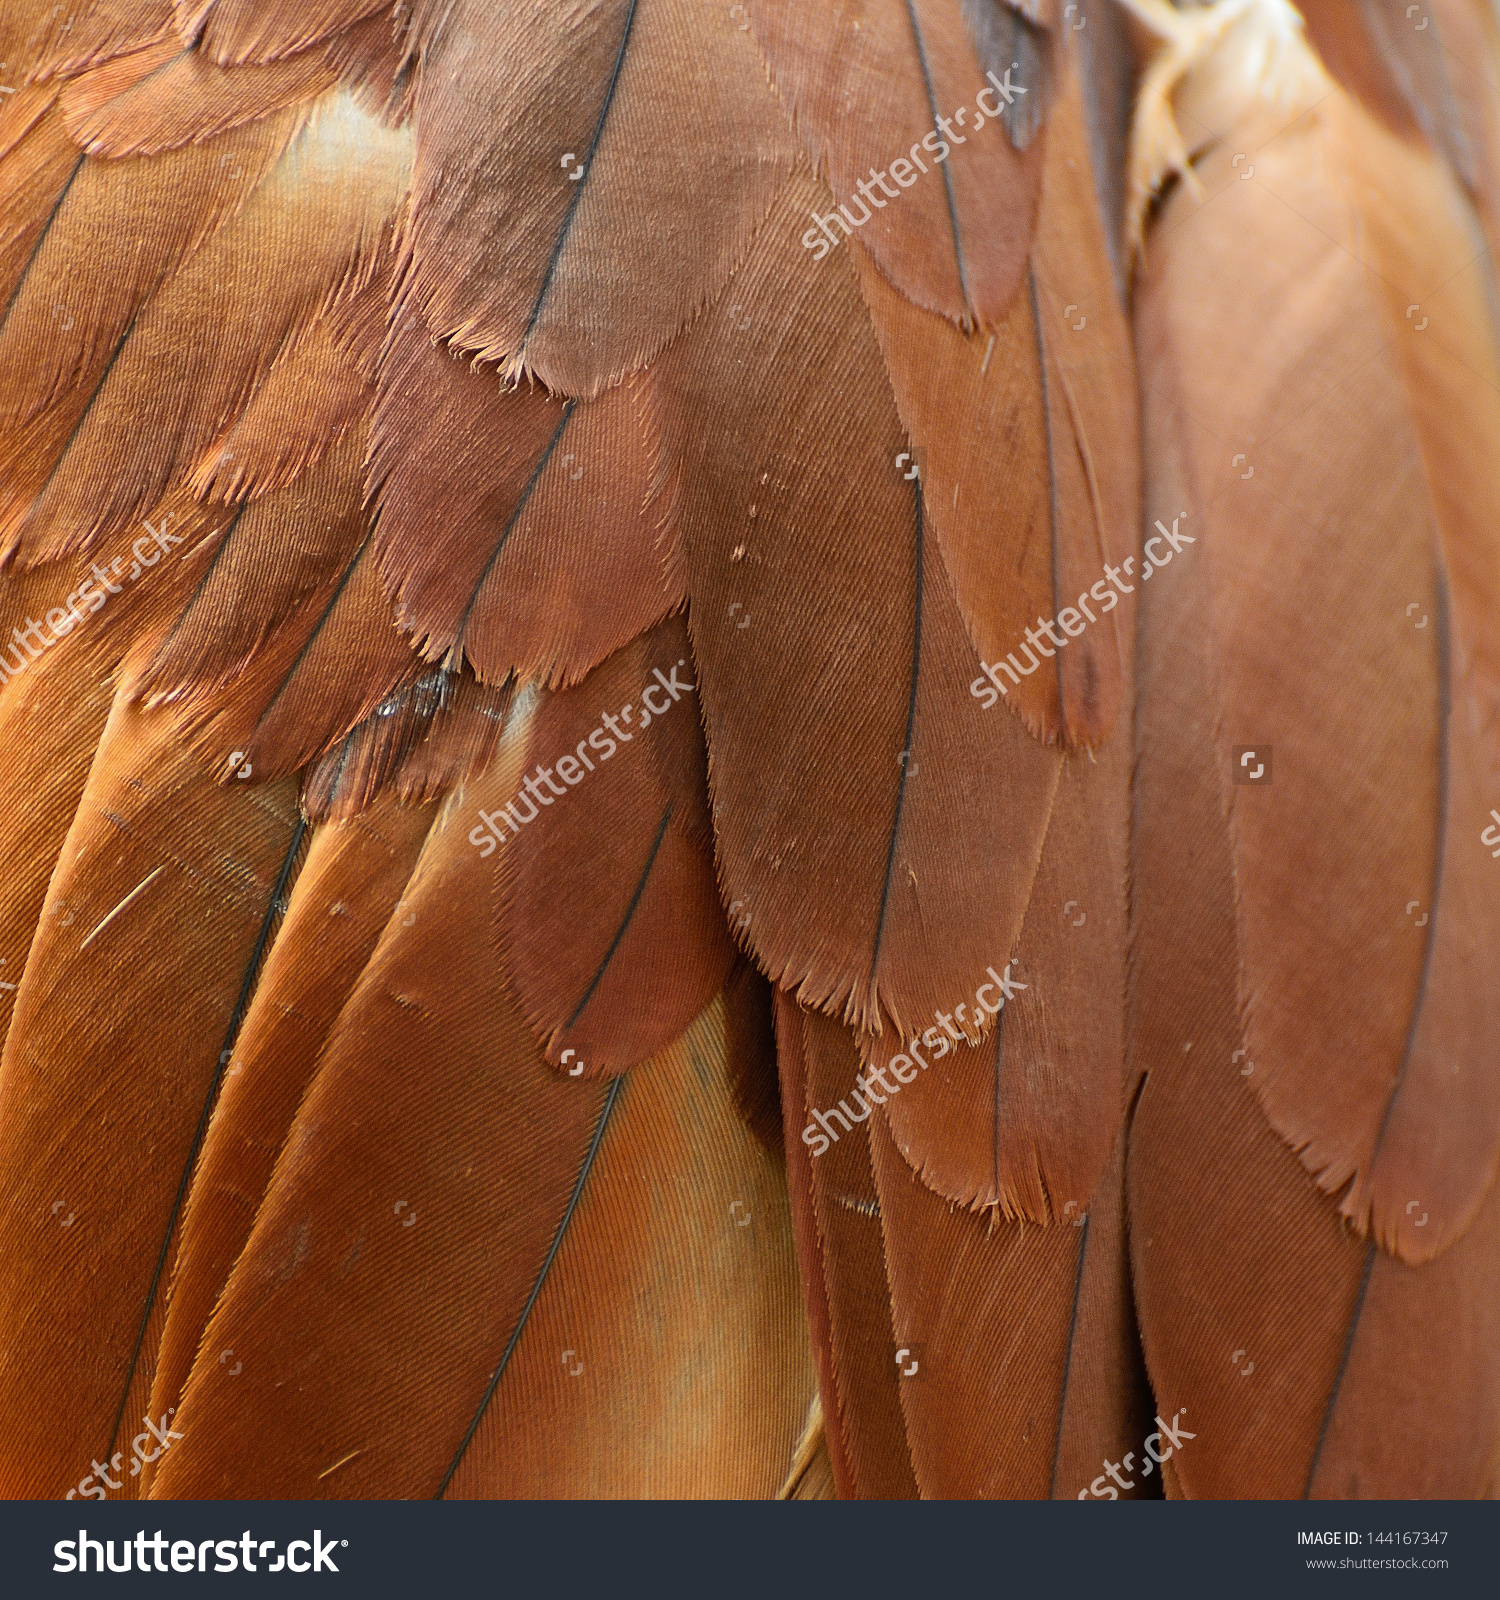 Brahminy Kite (Haliastur Indus) Feather Stock Photo 144167347.